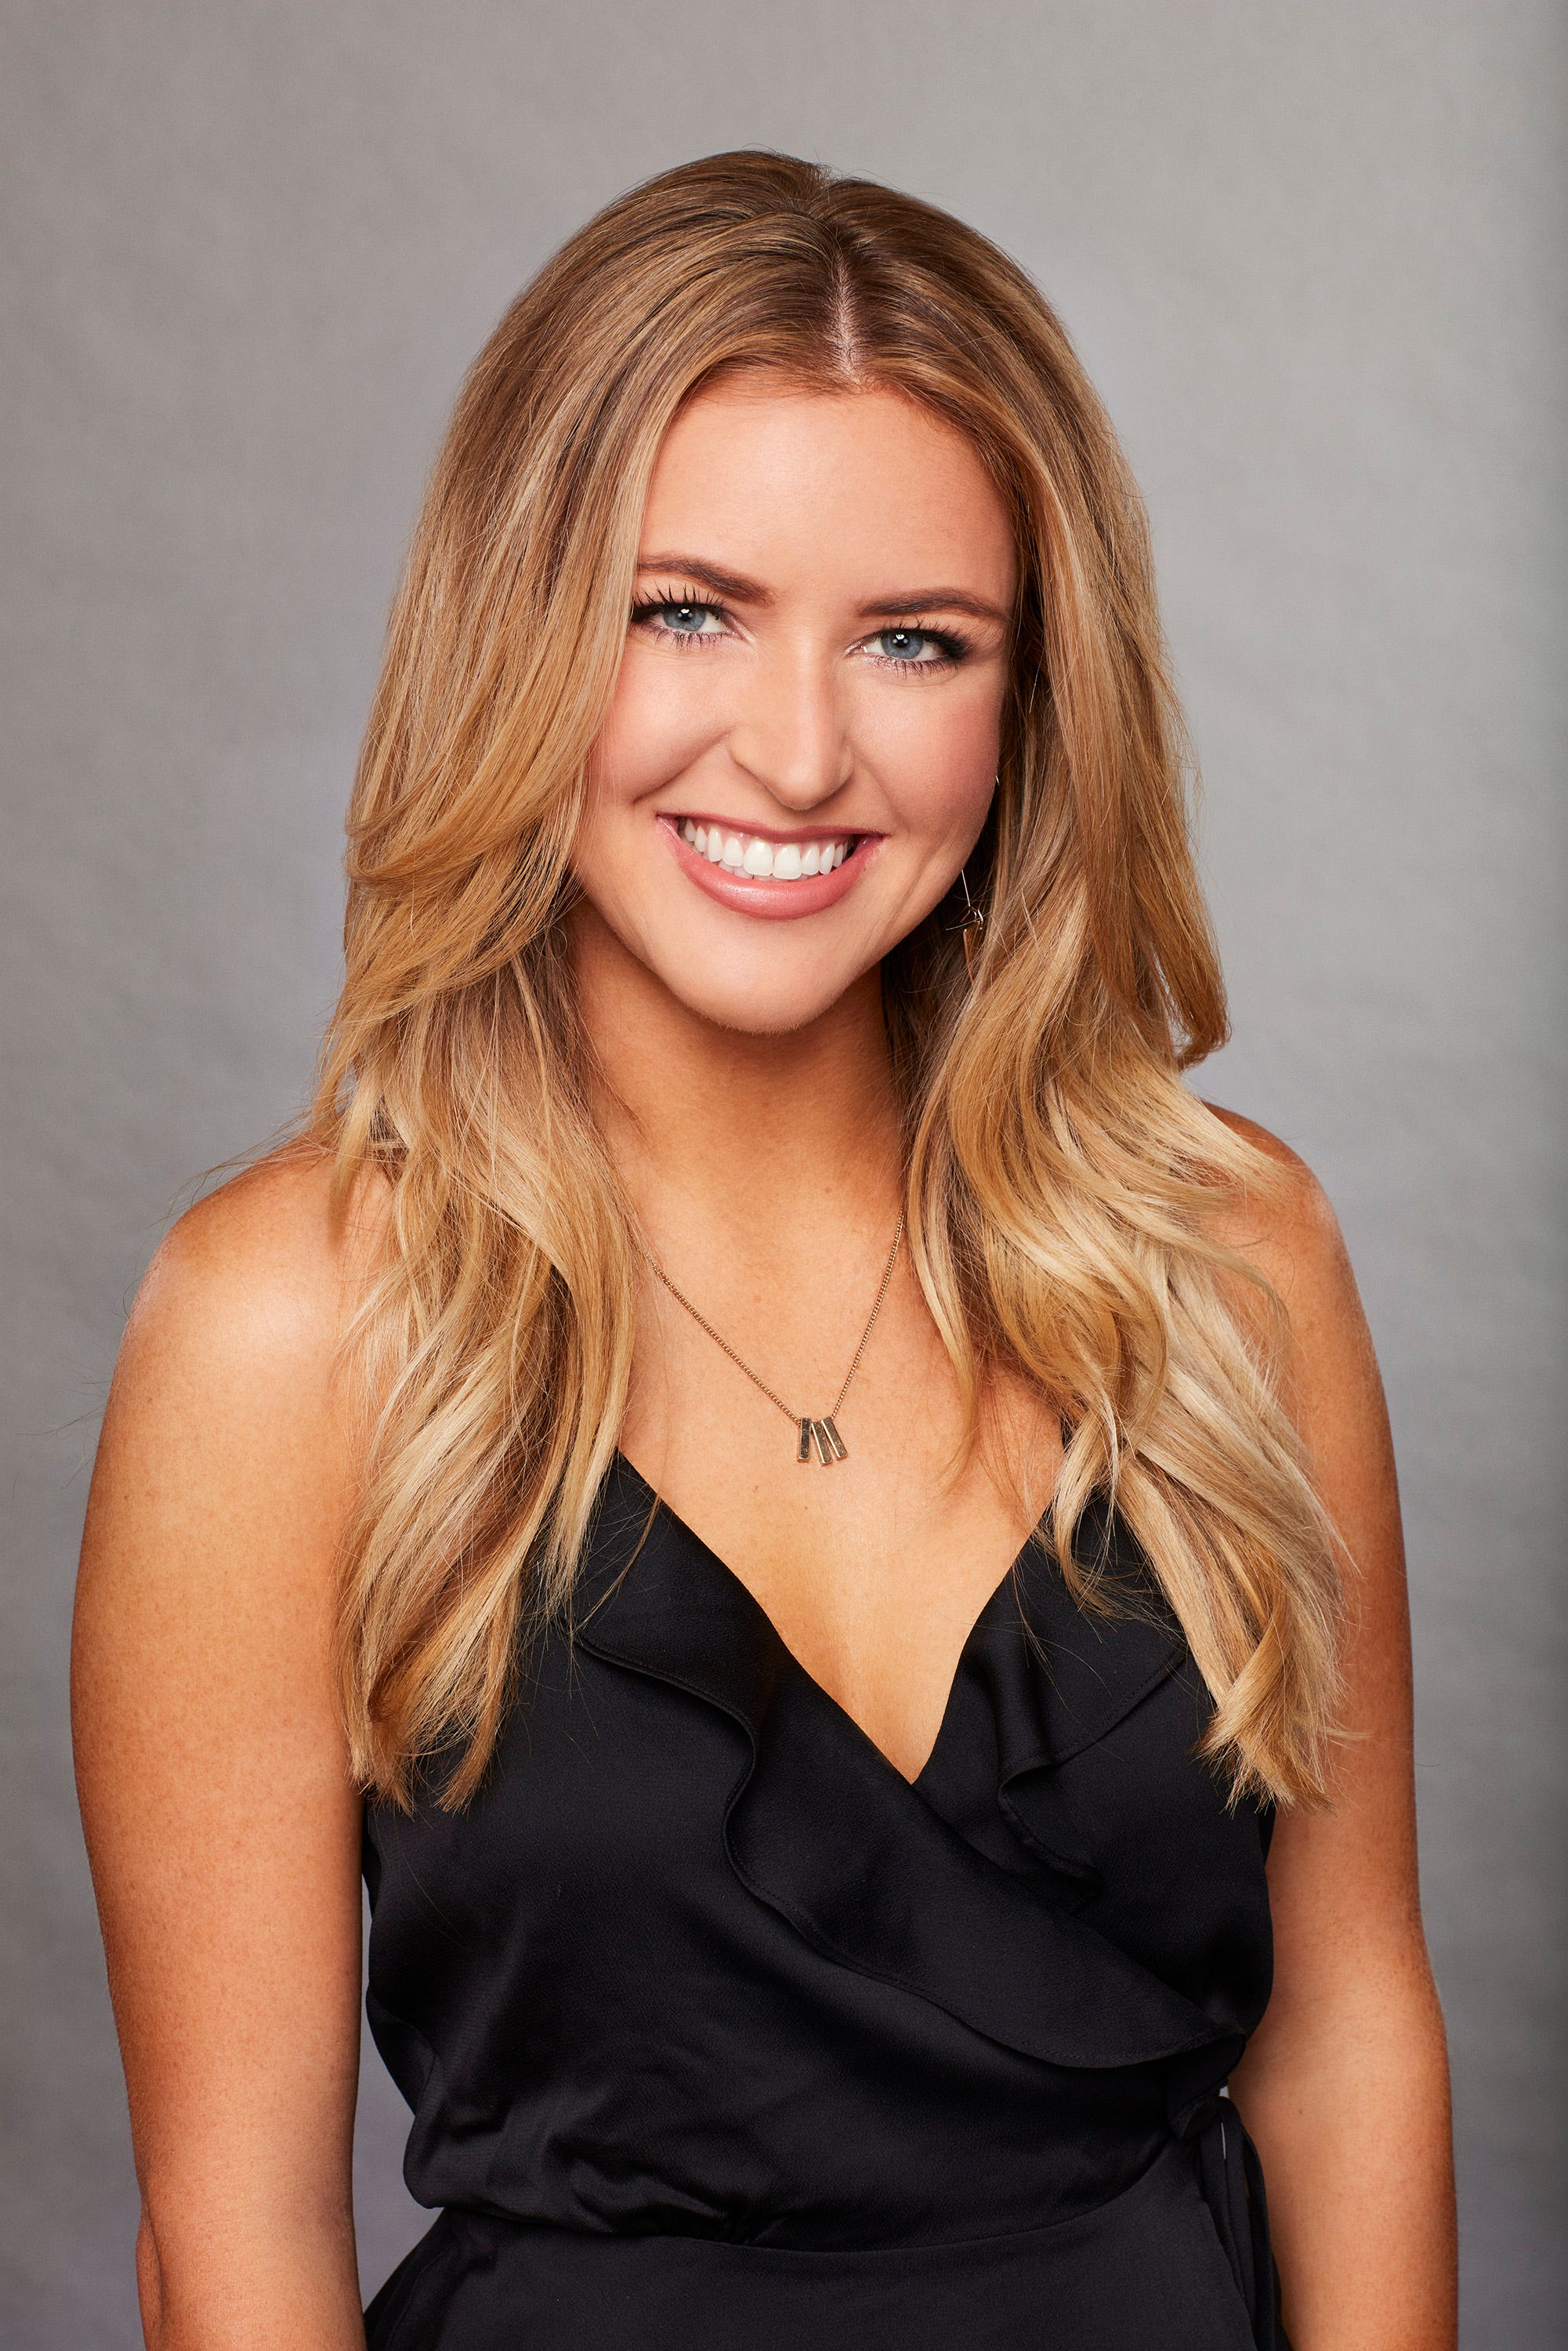 How Long Do The Bachelor Contestants Date